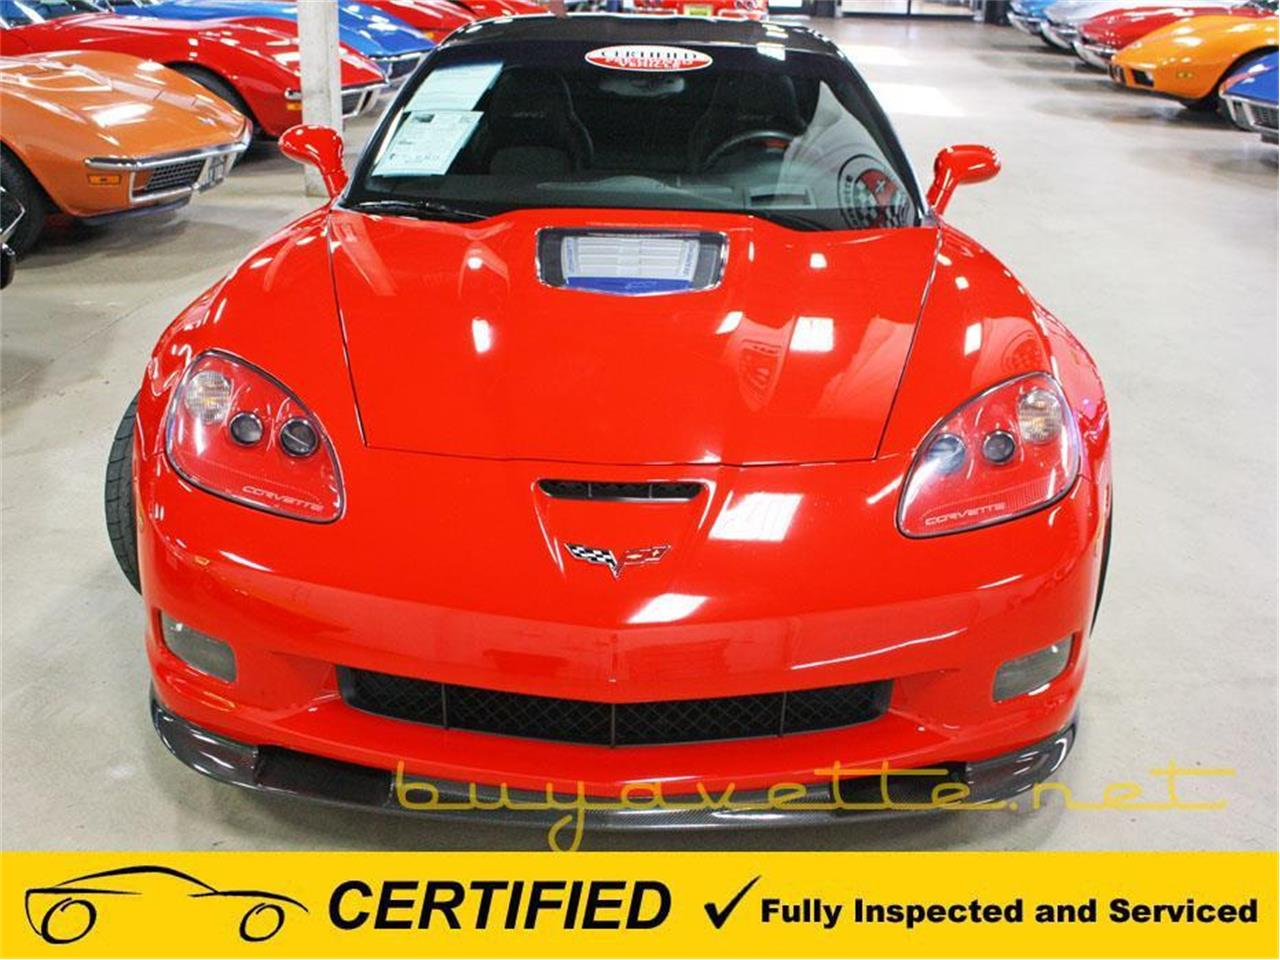 2010 Chevrolet Corvette for sale in Atlanta, GA – photo 4